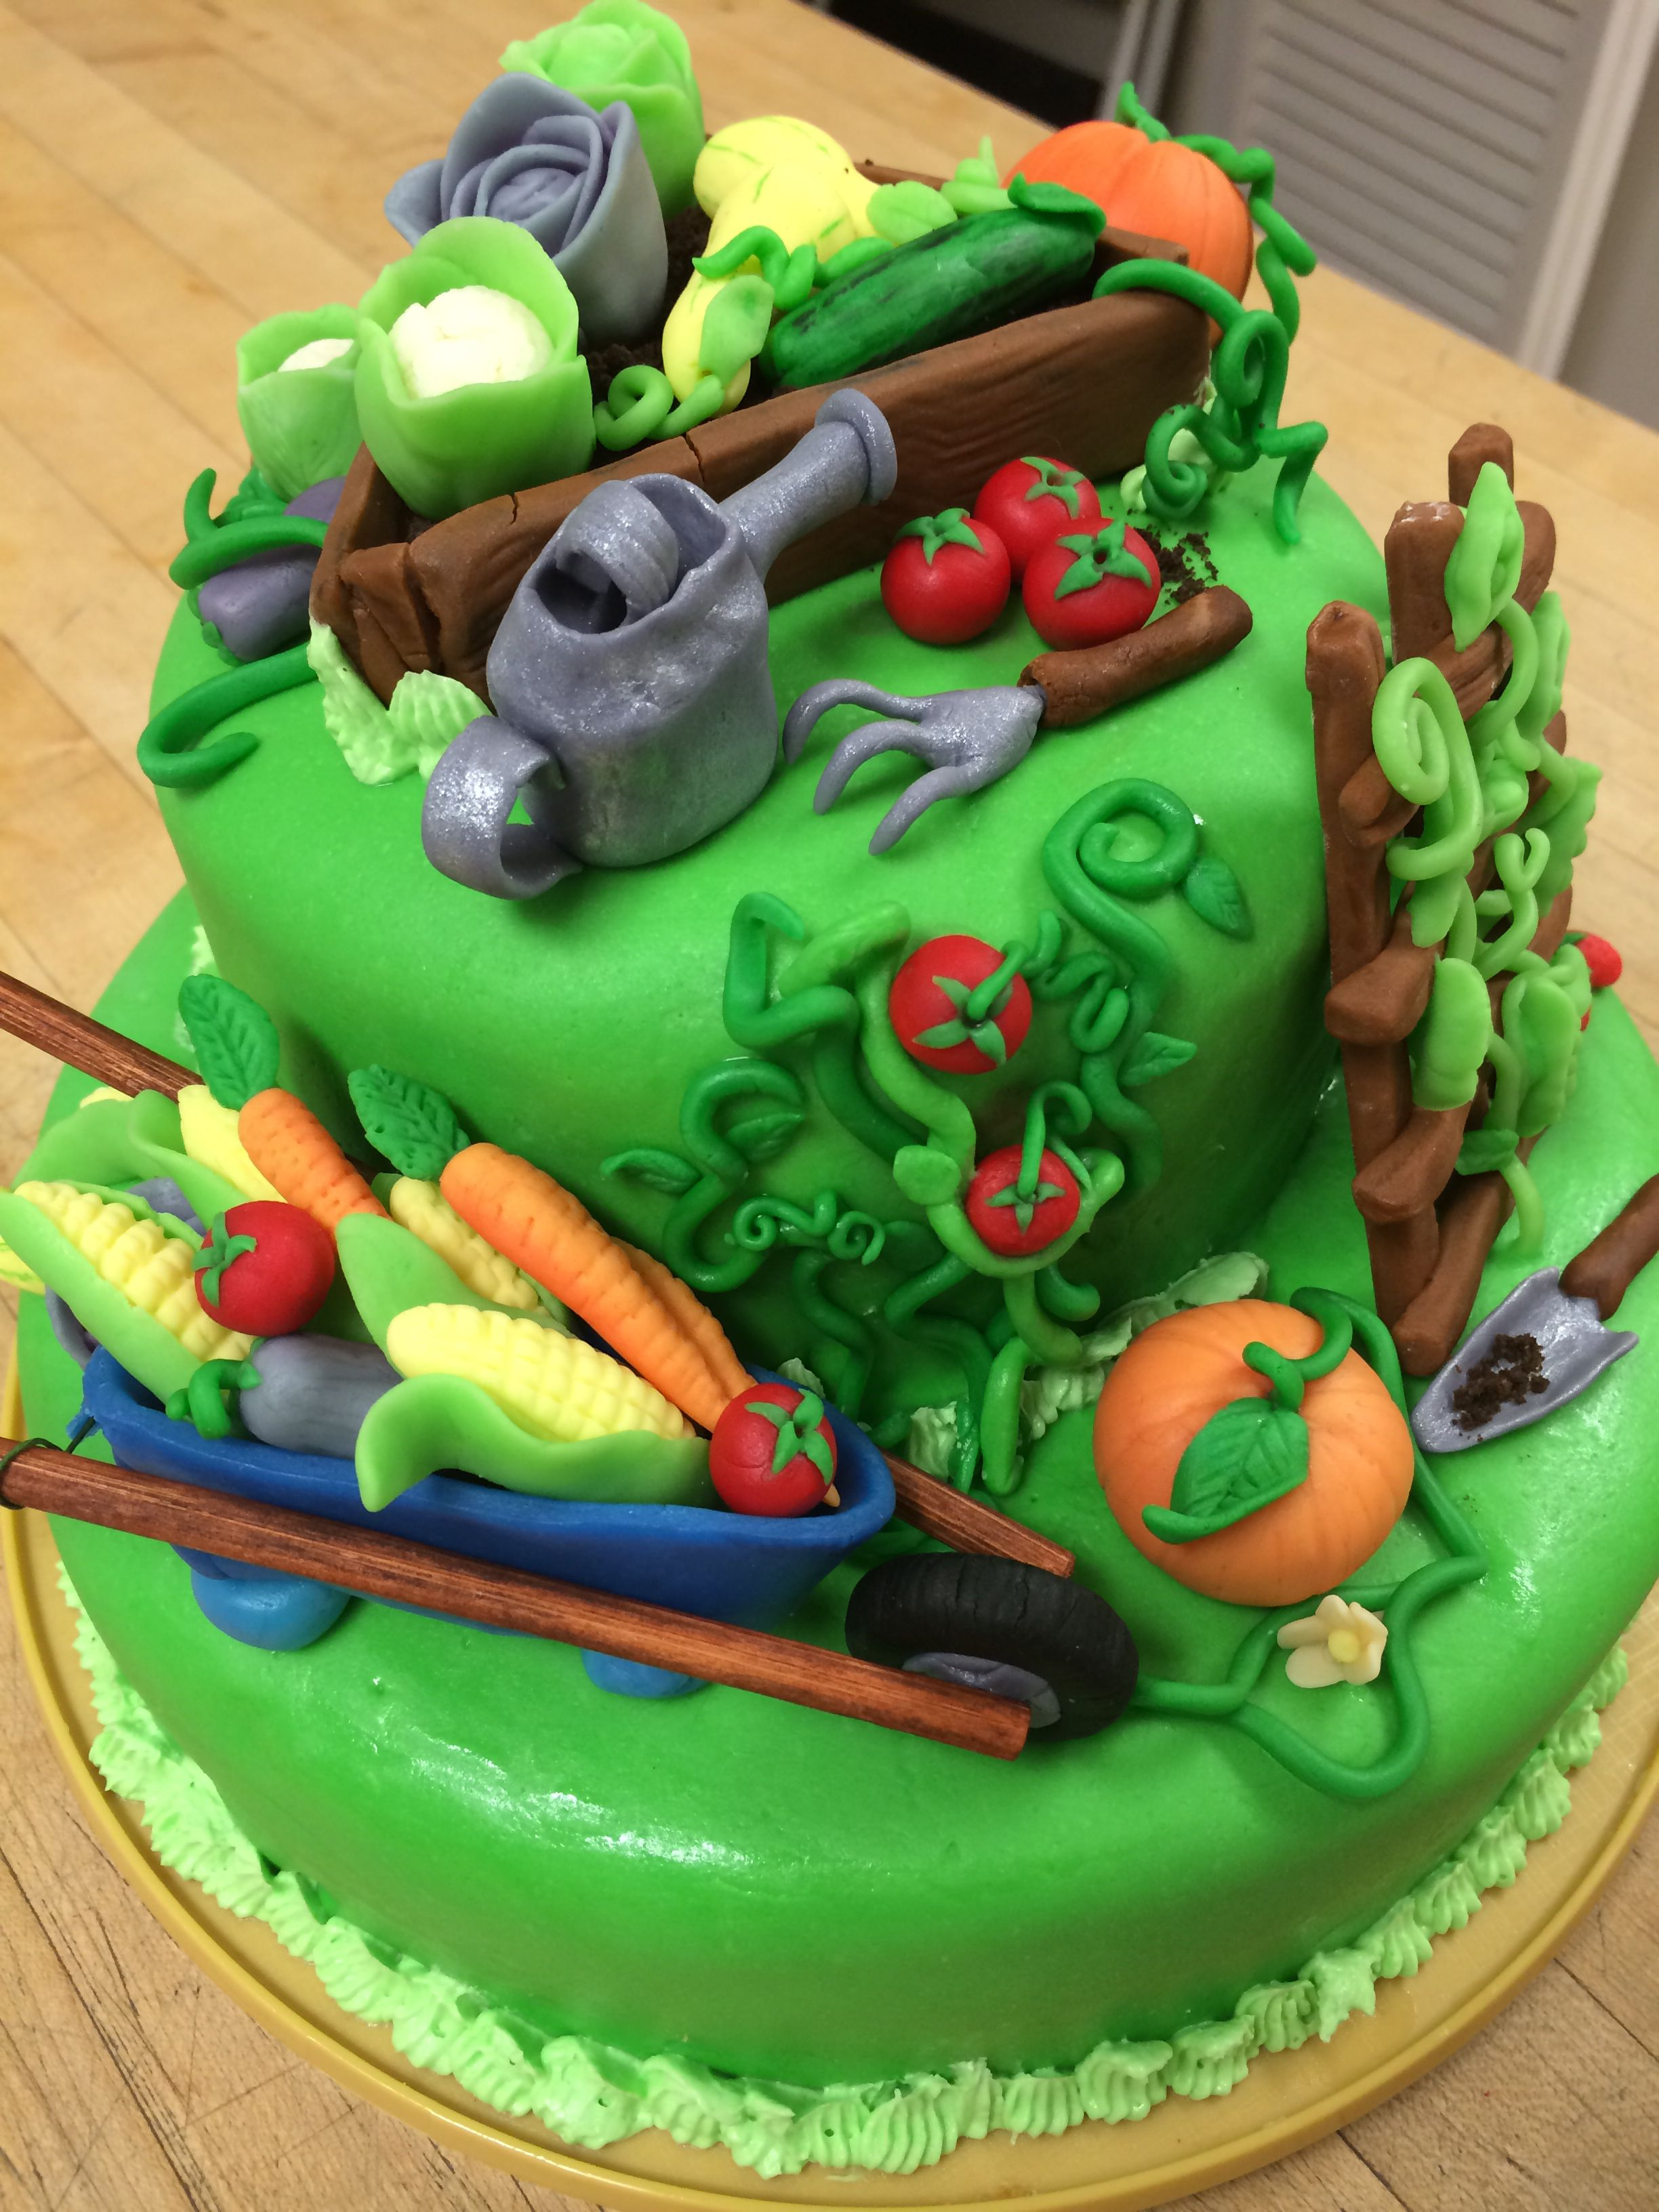 Another View Of The Vegetable Garden Cake